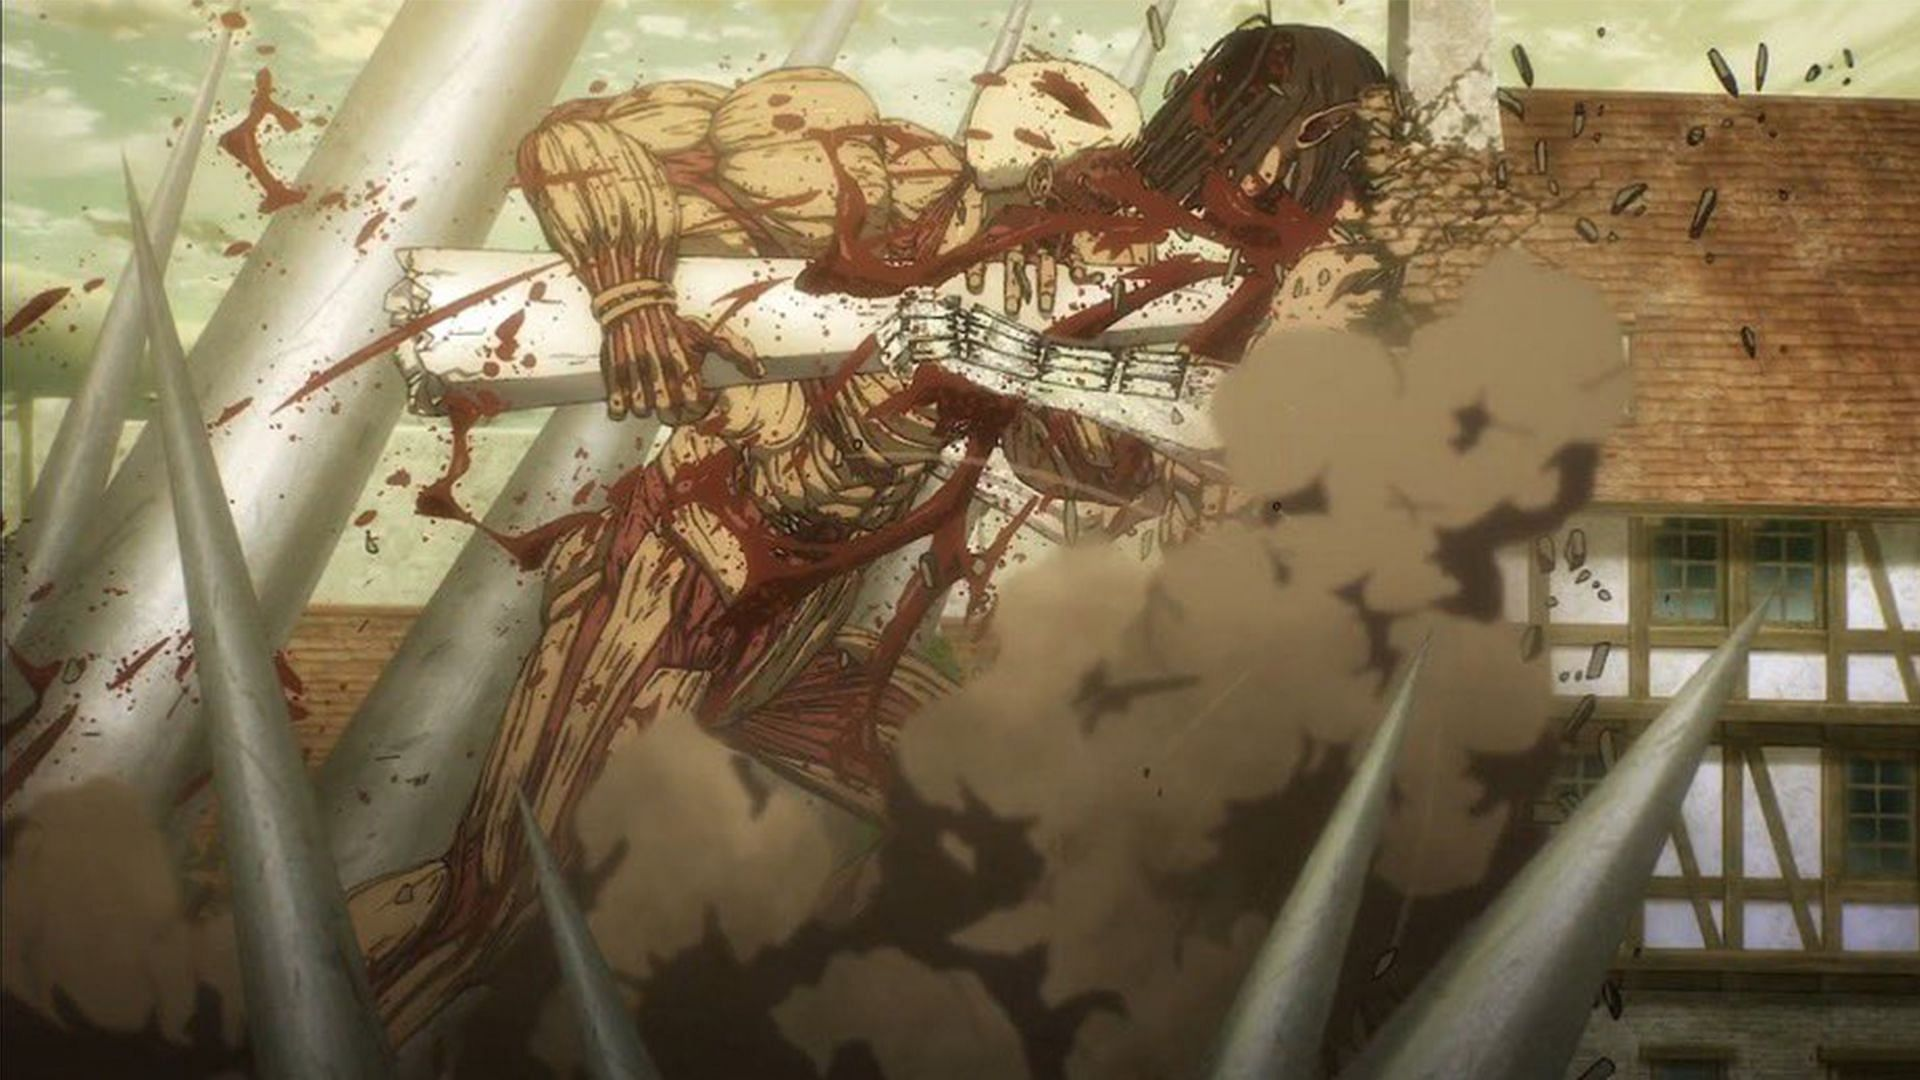 Attack On Titan Final Season: Twitter goes berserk as one of the greatest animes inches closer towards its conclusion (Image via Twitter/ @Kid_Kass)